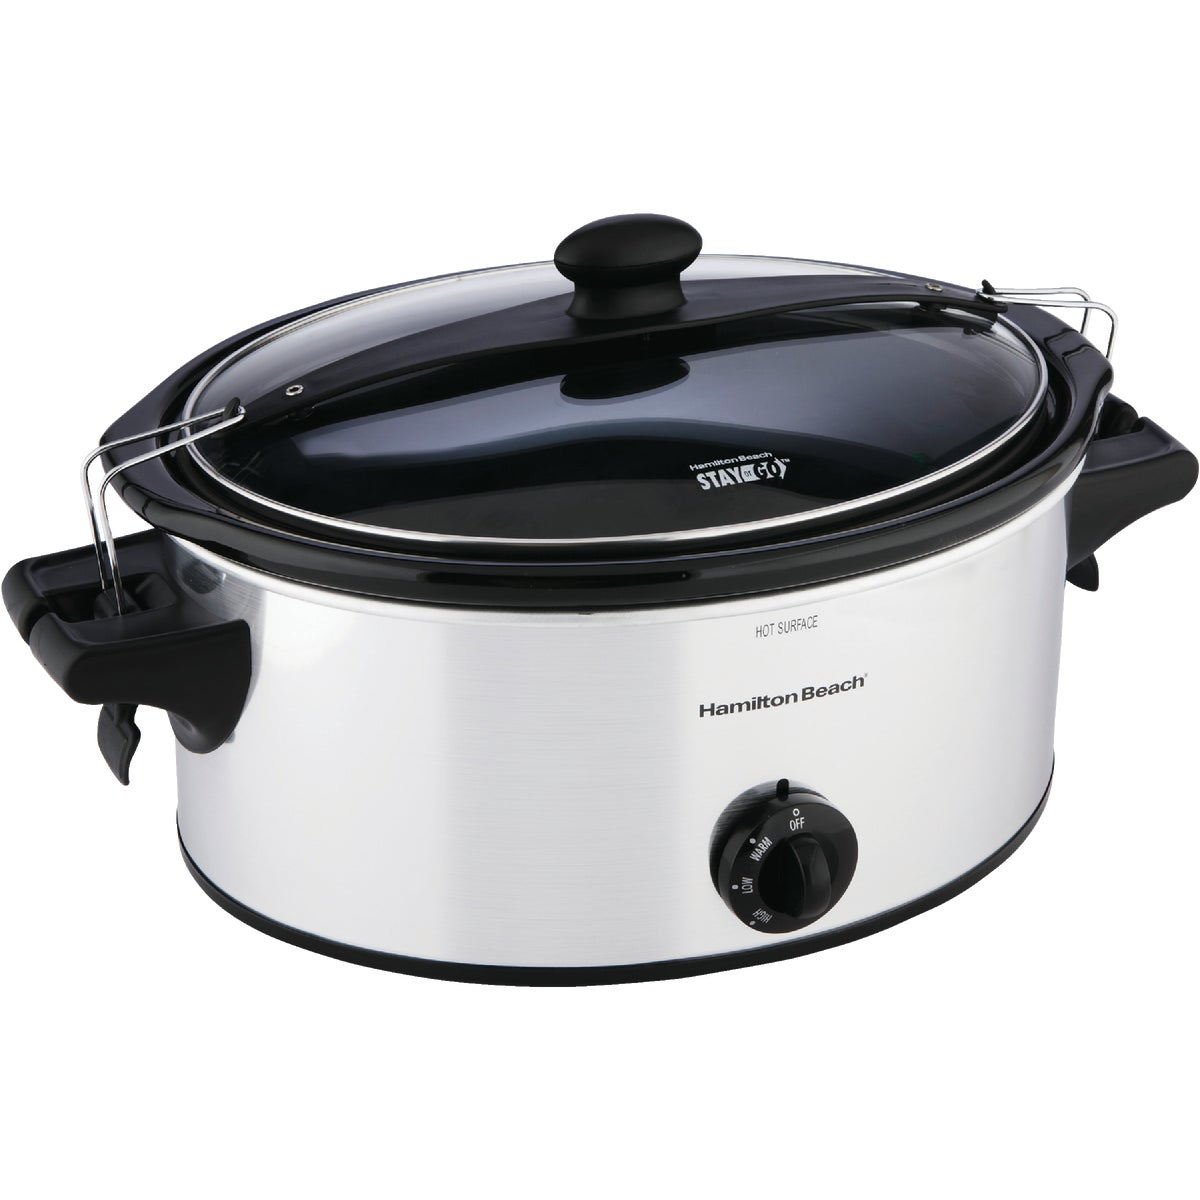 6 QT  SS SLOW COOKER - 33262 by Hamilton Beach Brand